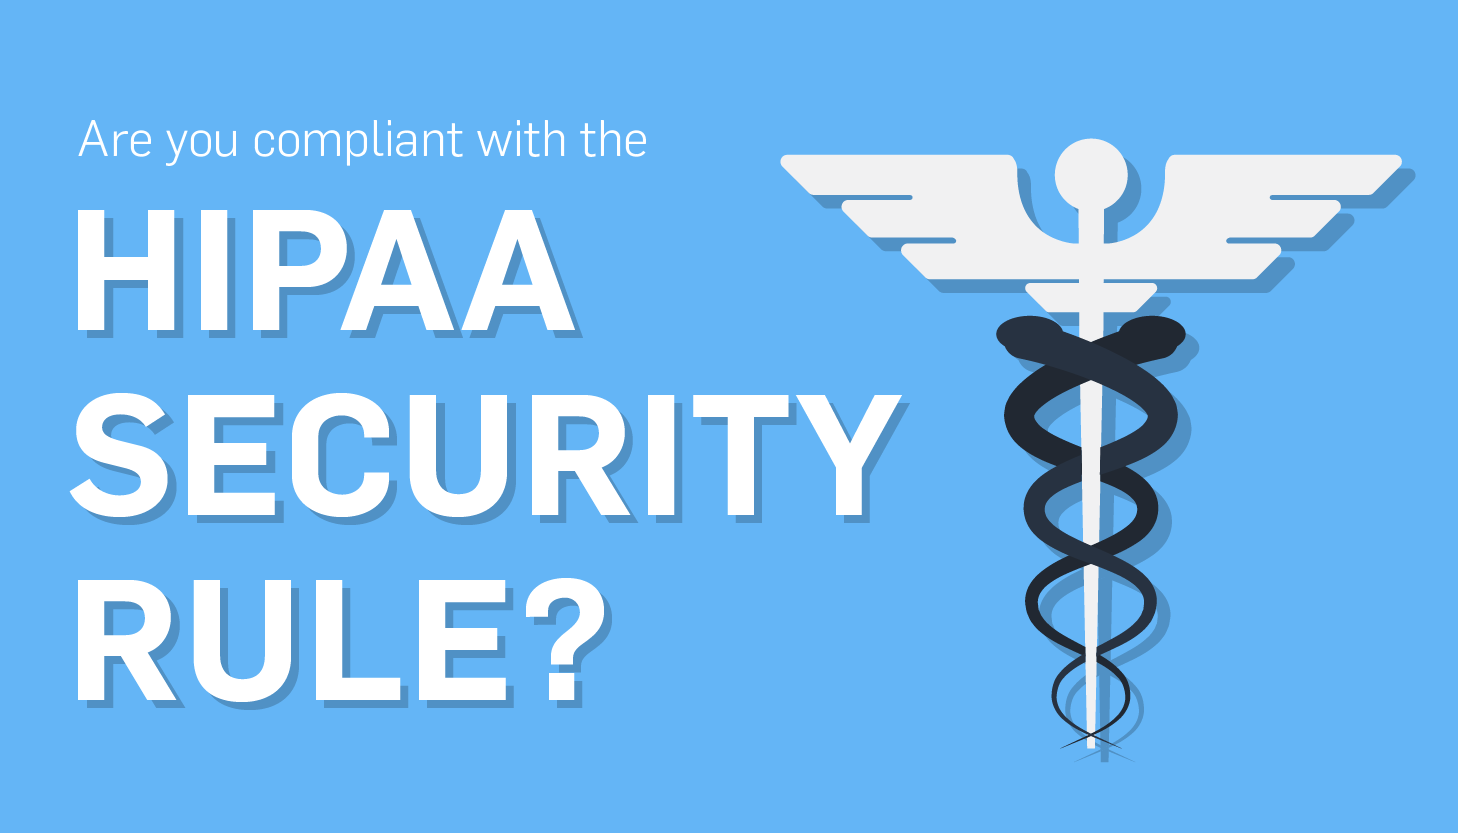 hipaa health the privacy rule and This guide addresses some of the more frequently asked questions about when it  is appropriate under the privacy rule for a health care provider to share the.